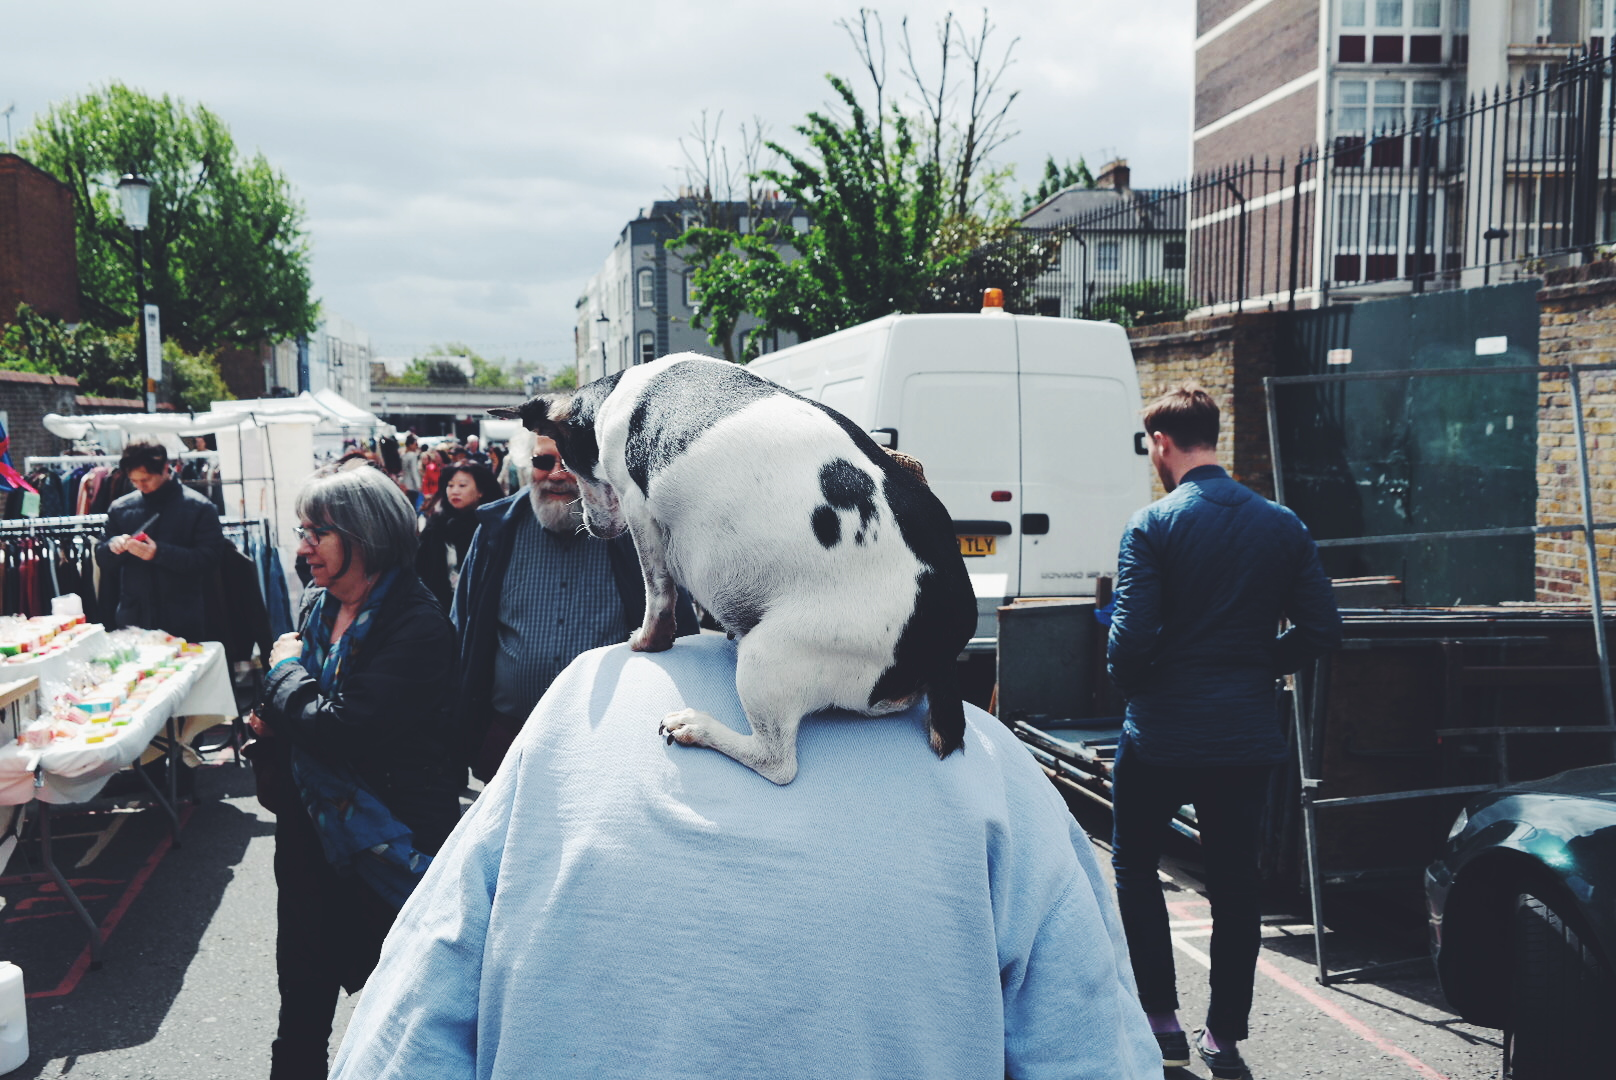 Dog on my shoulders Portobello Road Market London street Londres photo Samsung Galaxy S6 Edge smartphone United States of Paris blog